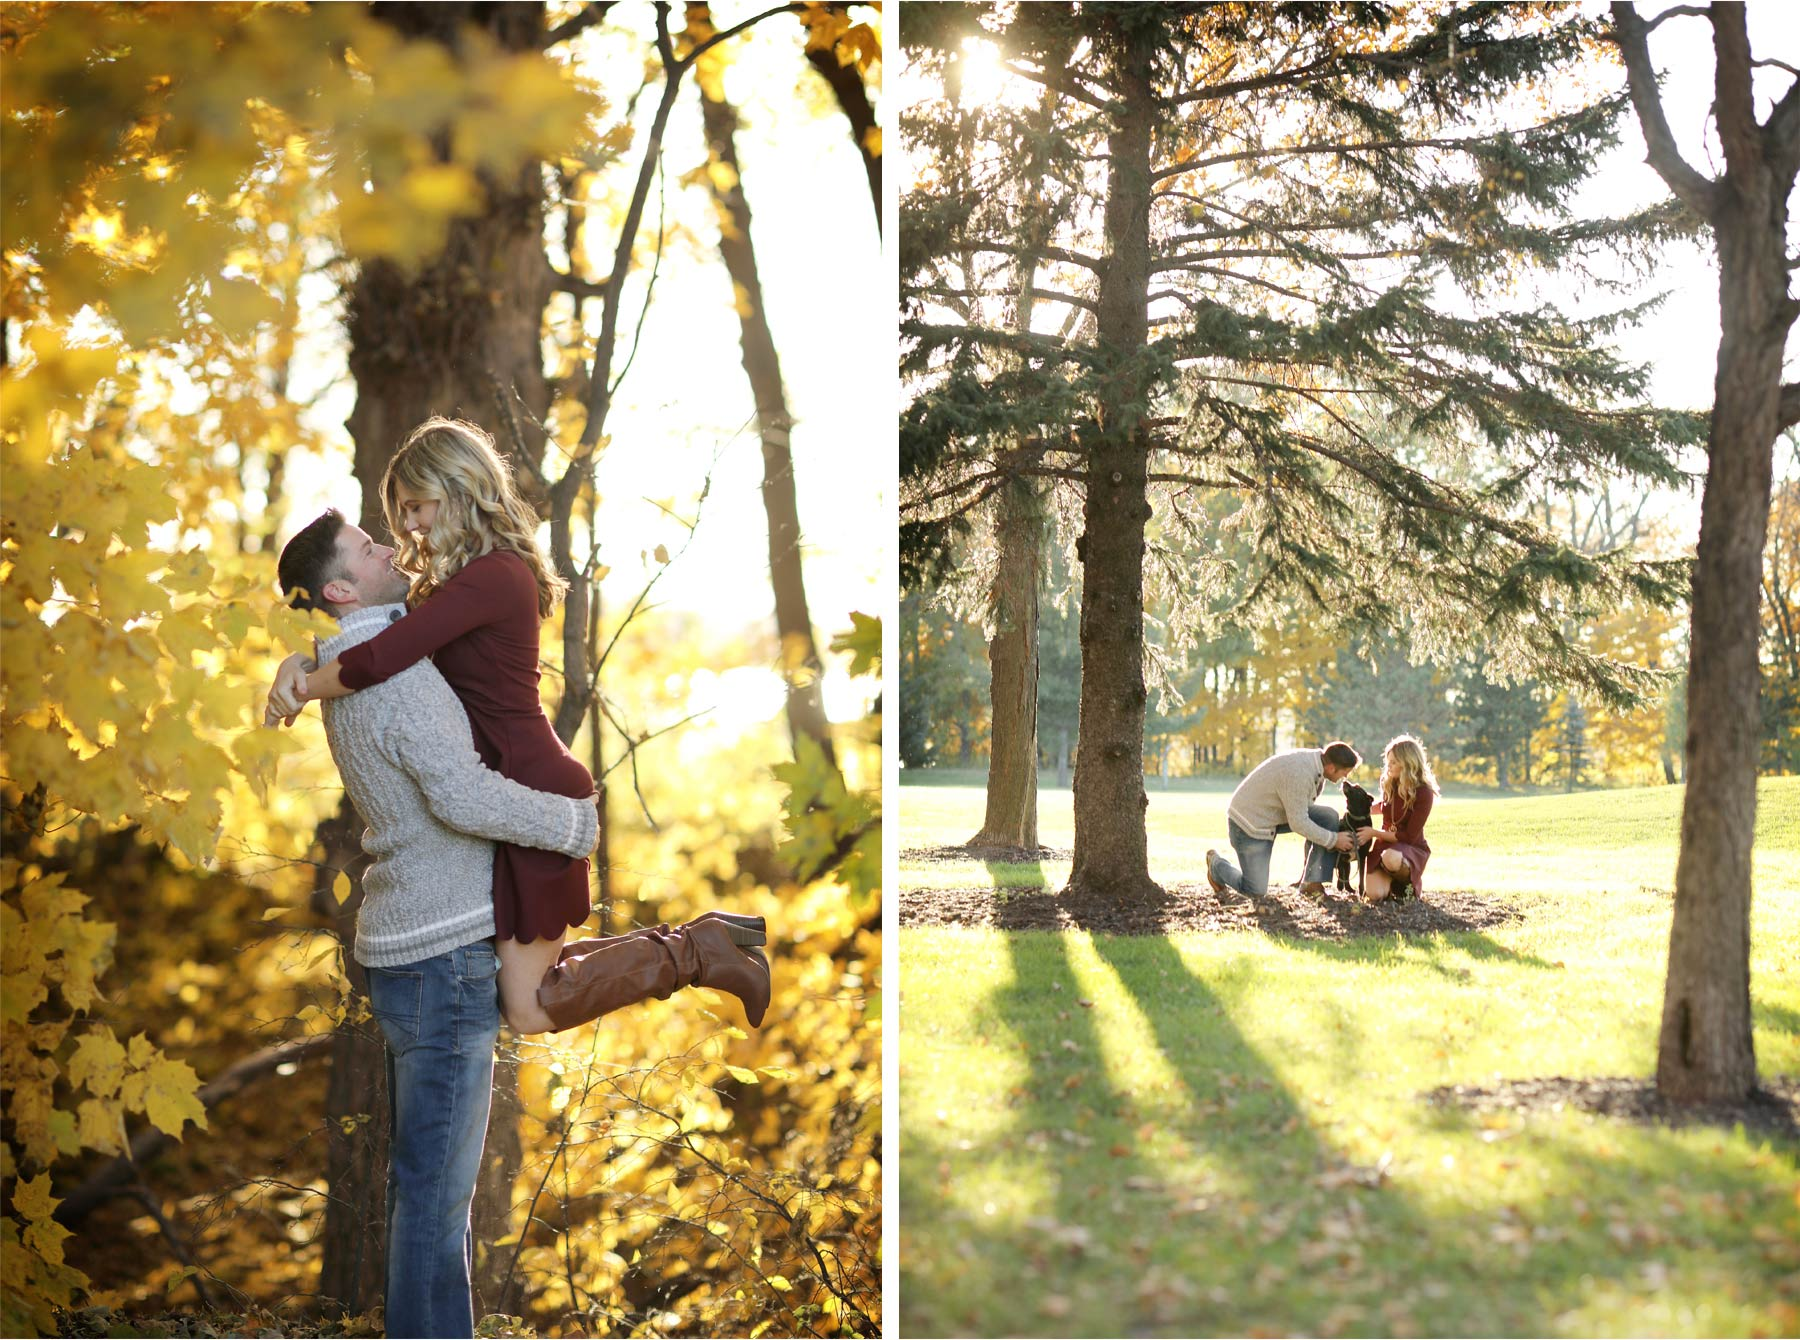 09-Vick-Photography-Destination-Engagement-Session-Autumn-Fall-Leafs-Dog-Sunset-Katie-and-Bob.jpg